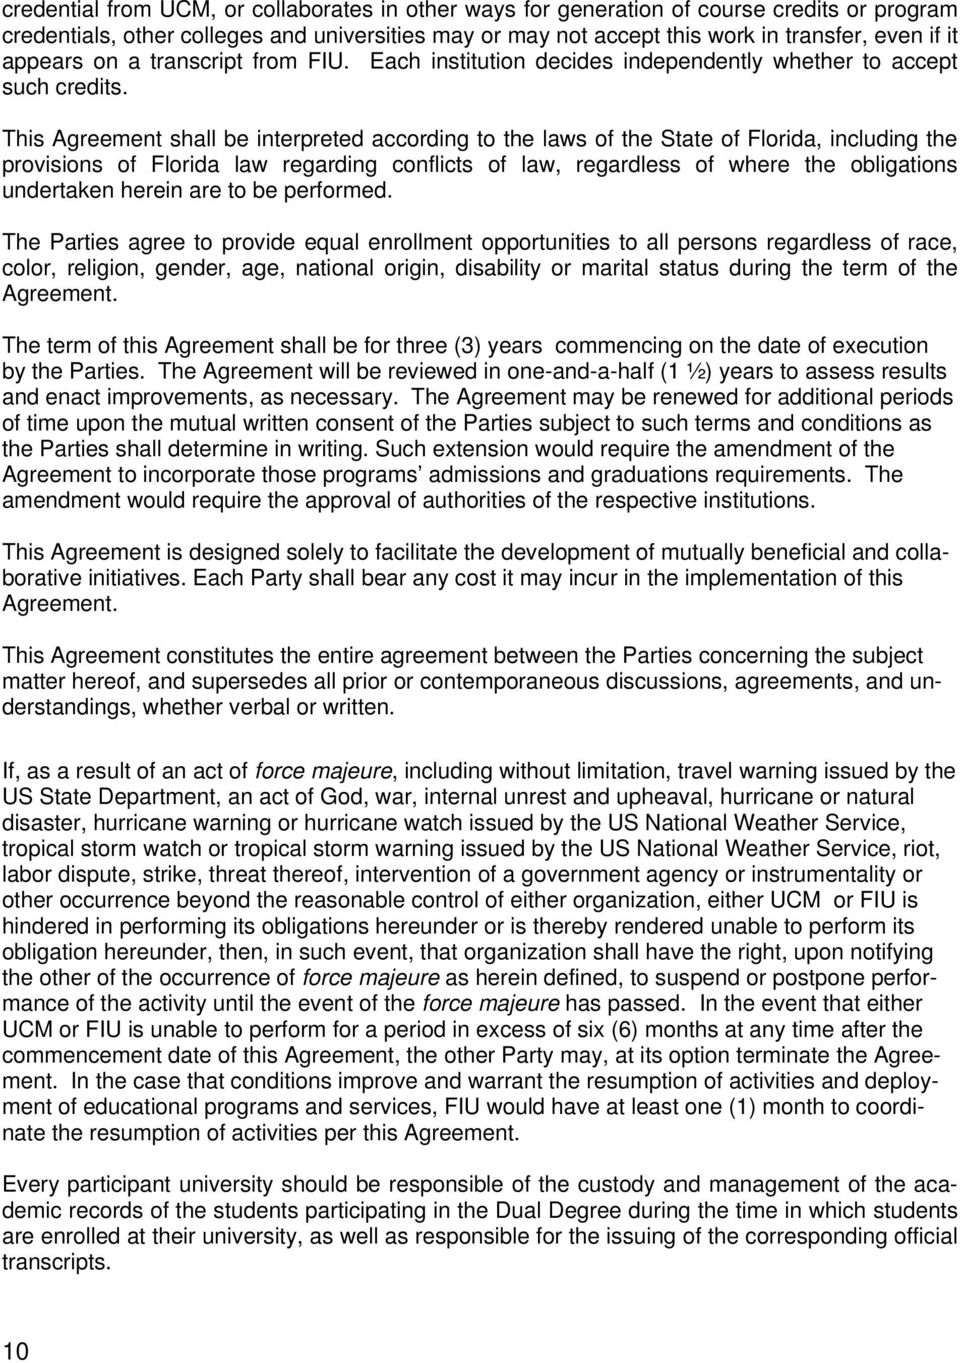 This Agreement shall be interpreted according to the laws of the State of Florida, including the provisions of Florida law regarding conflicts of law, regardless of where the obligations undertaken